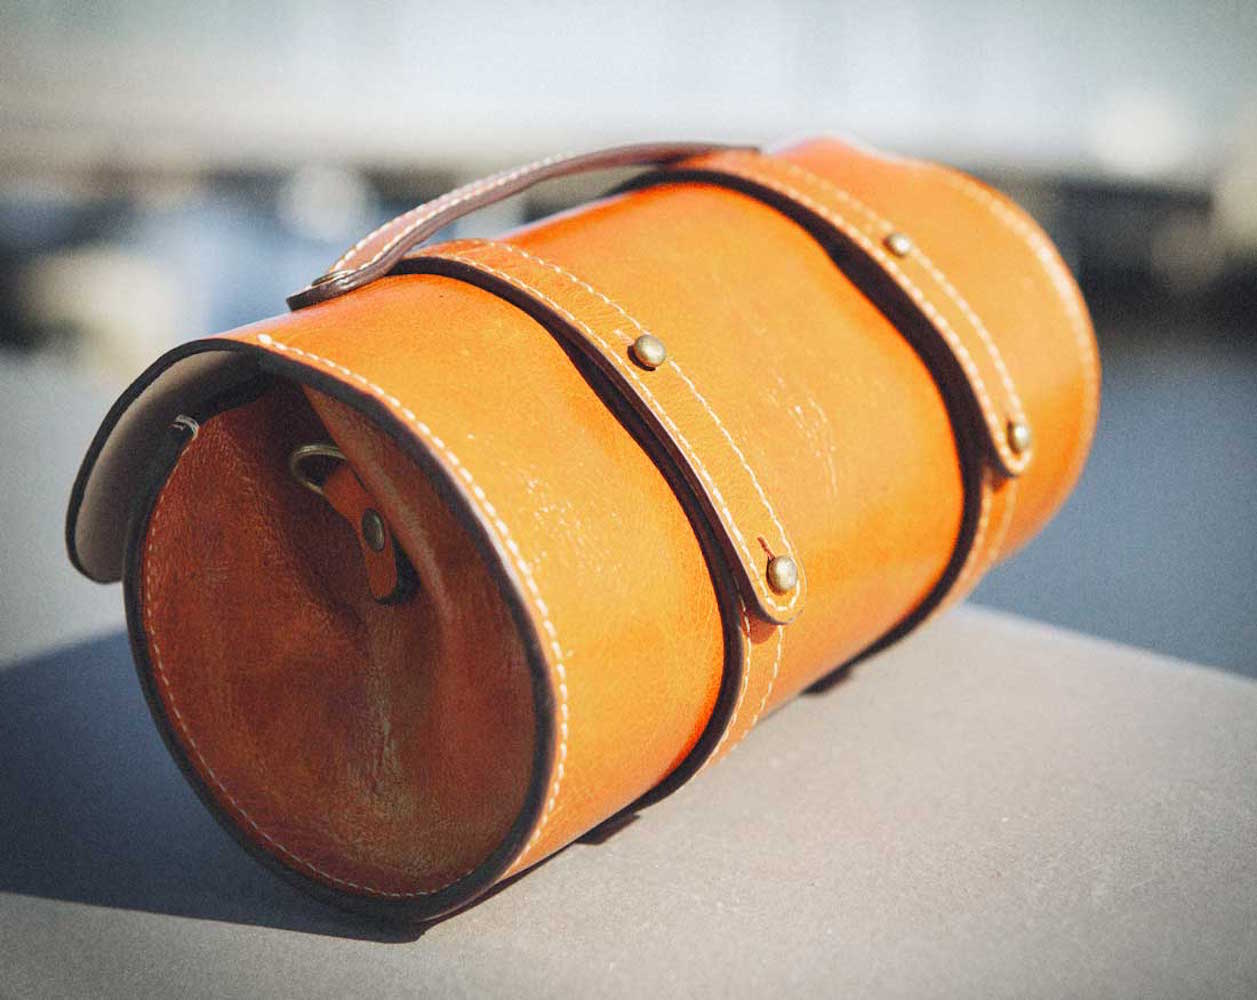 Small Barrel – The Cylindrical Wonder